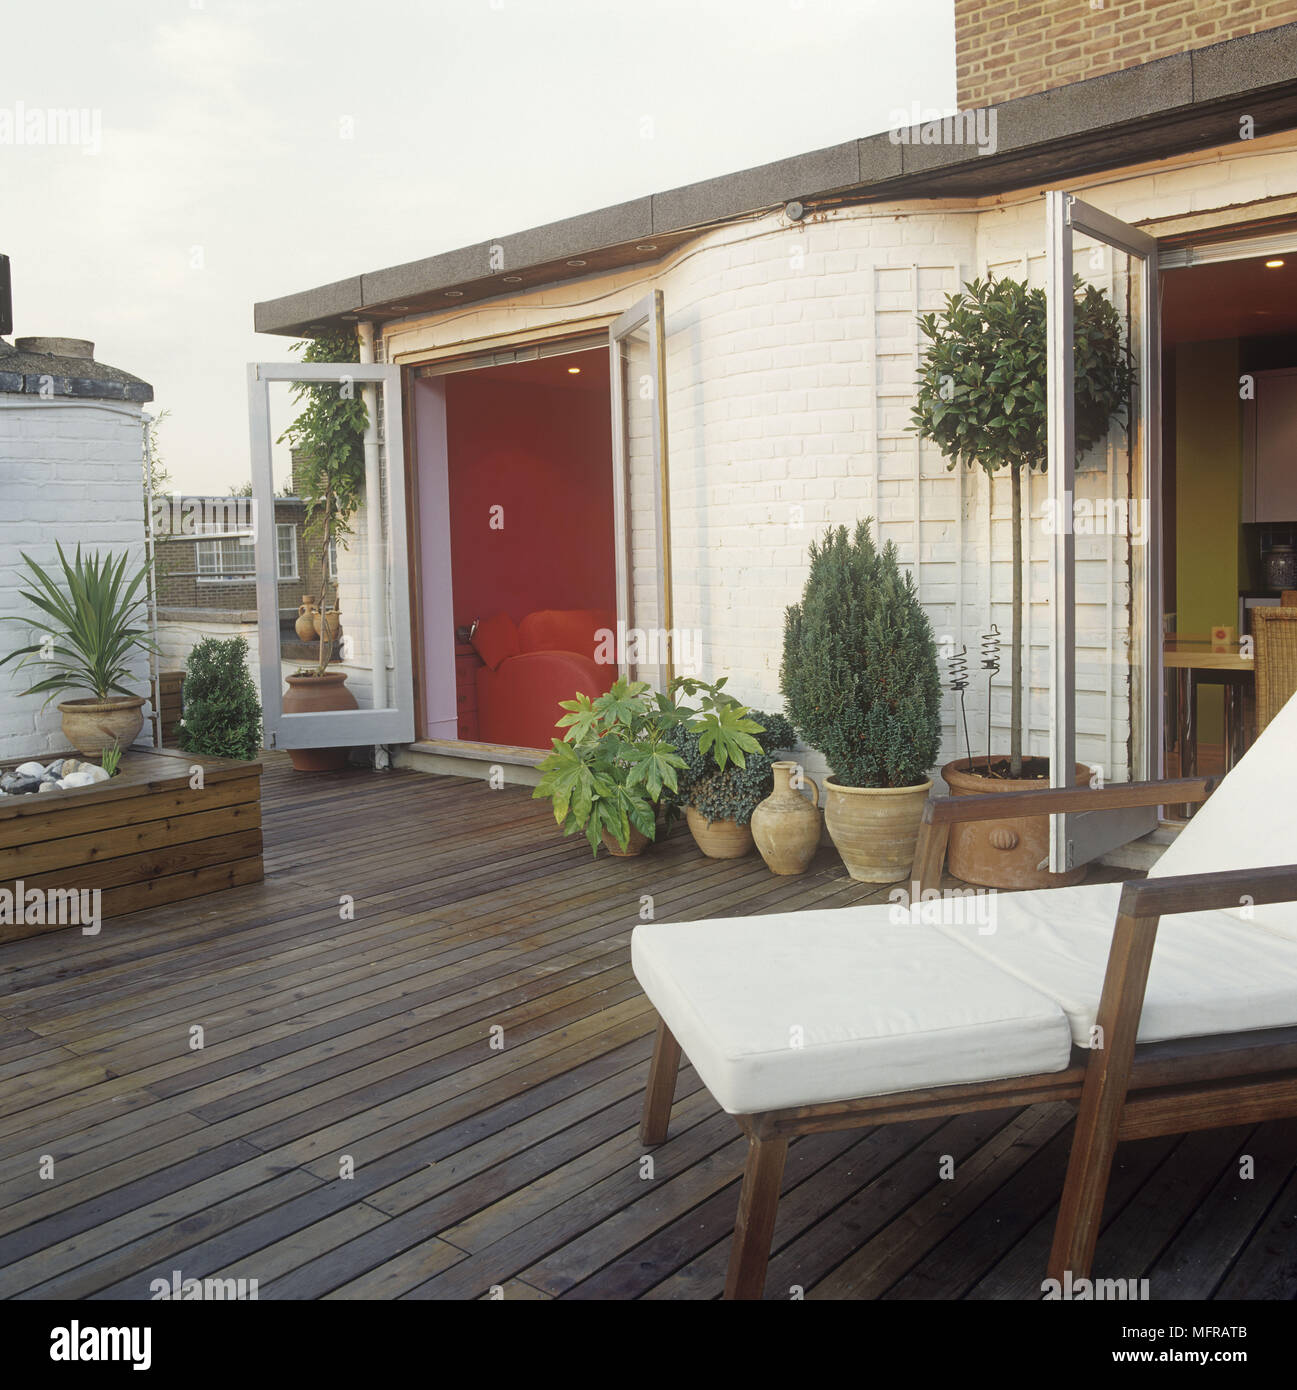 Decked Patio Area With Sun Lounger And Potted Plants